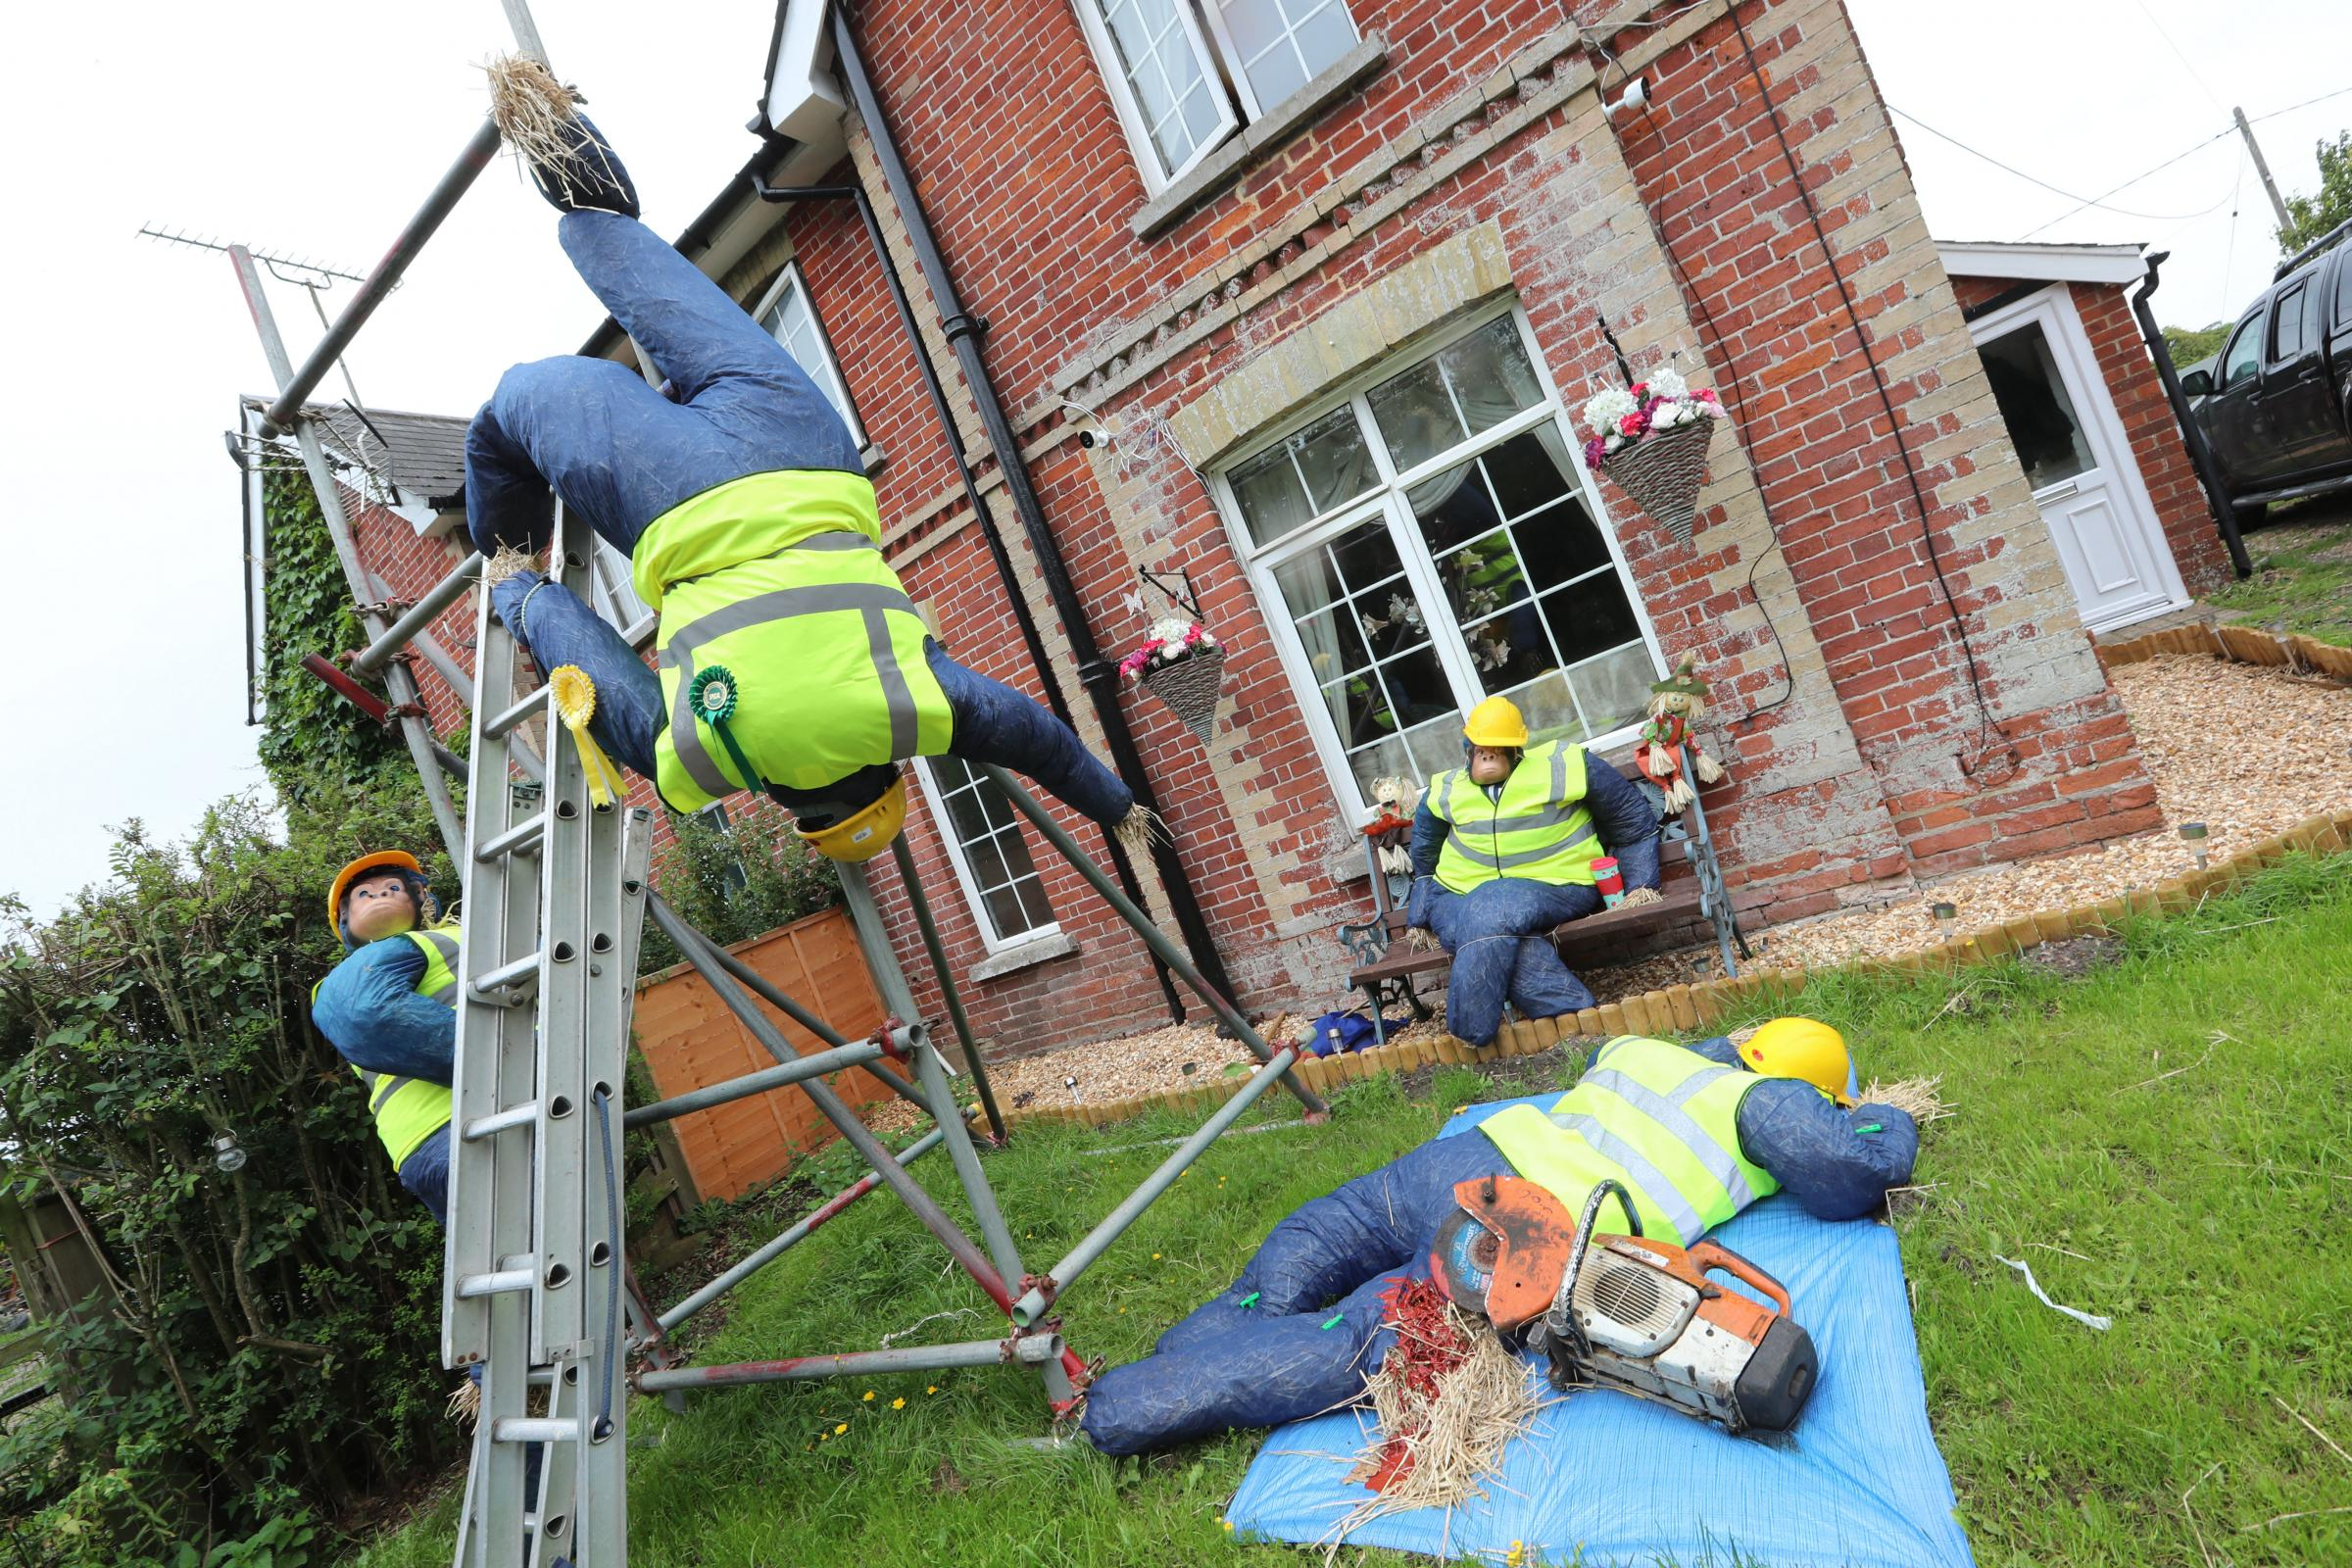 SpongeBob SquarePants to 'wonky workers' at Bisterne Scarecrow Festival